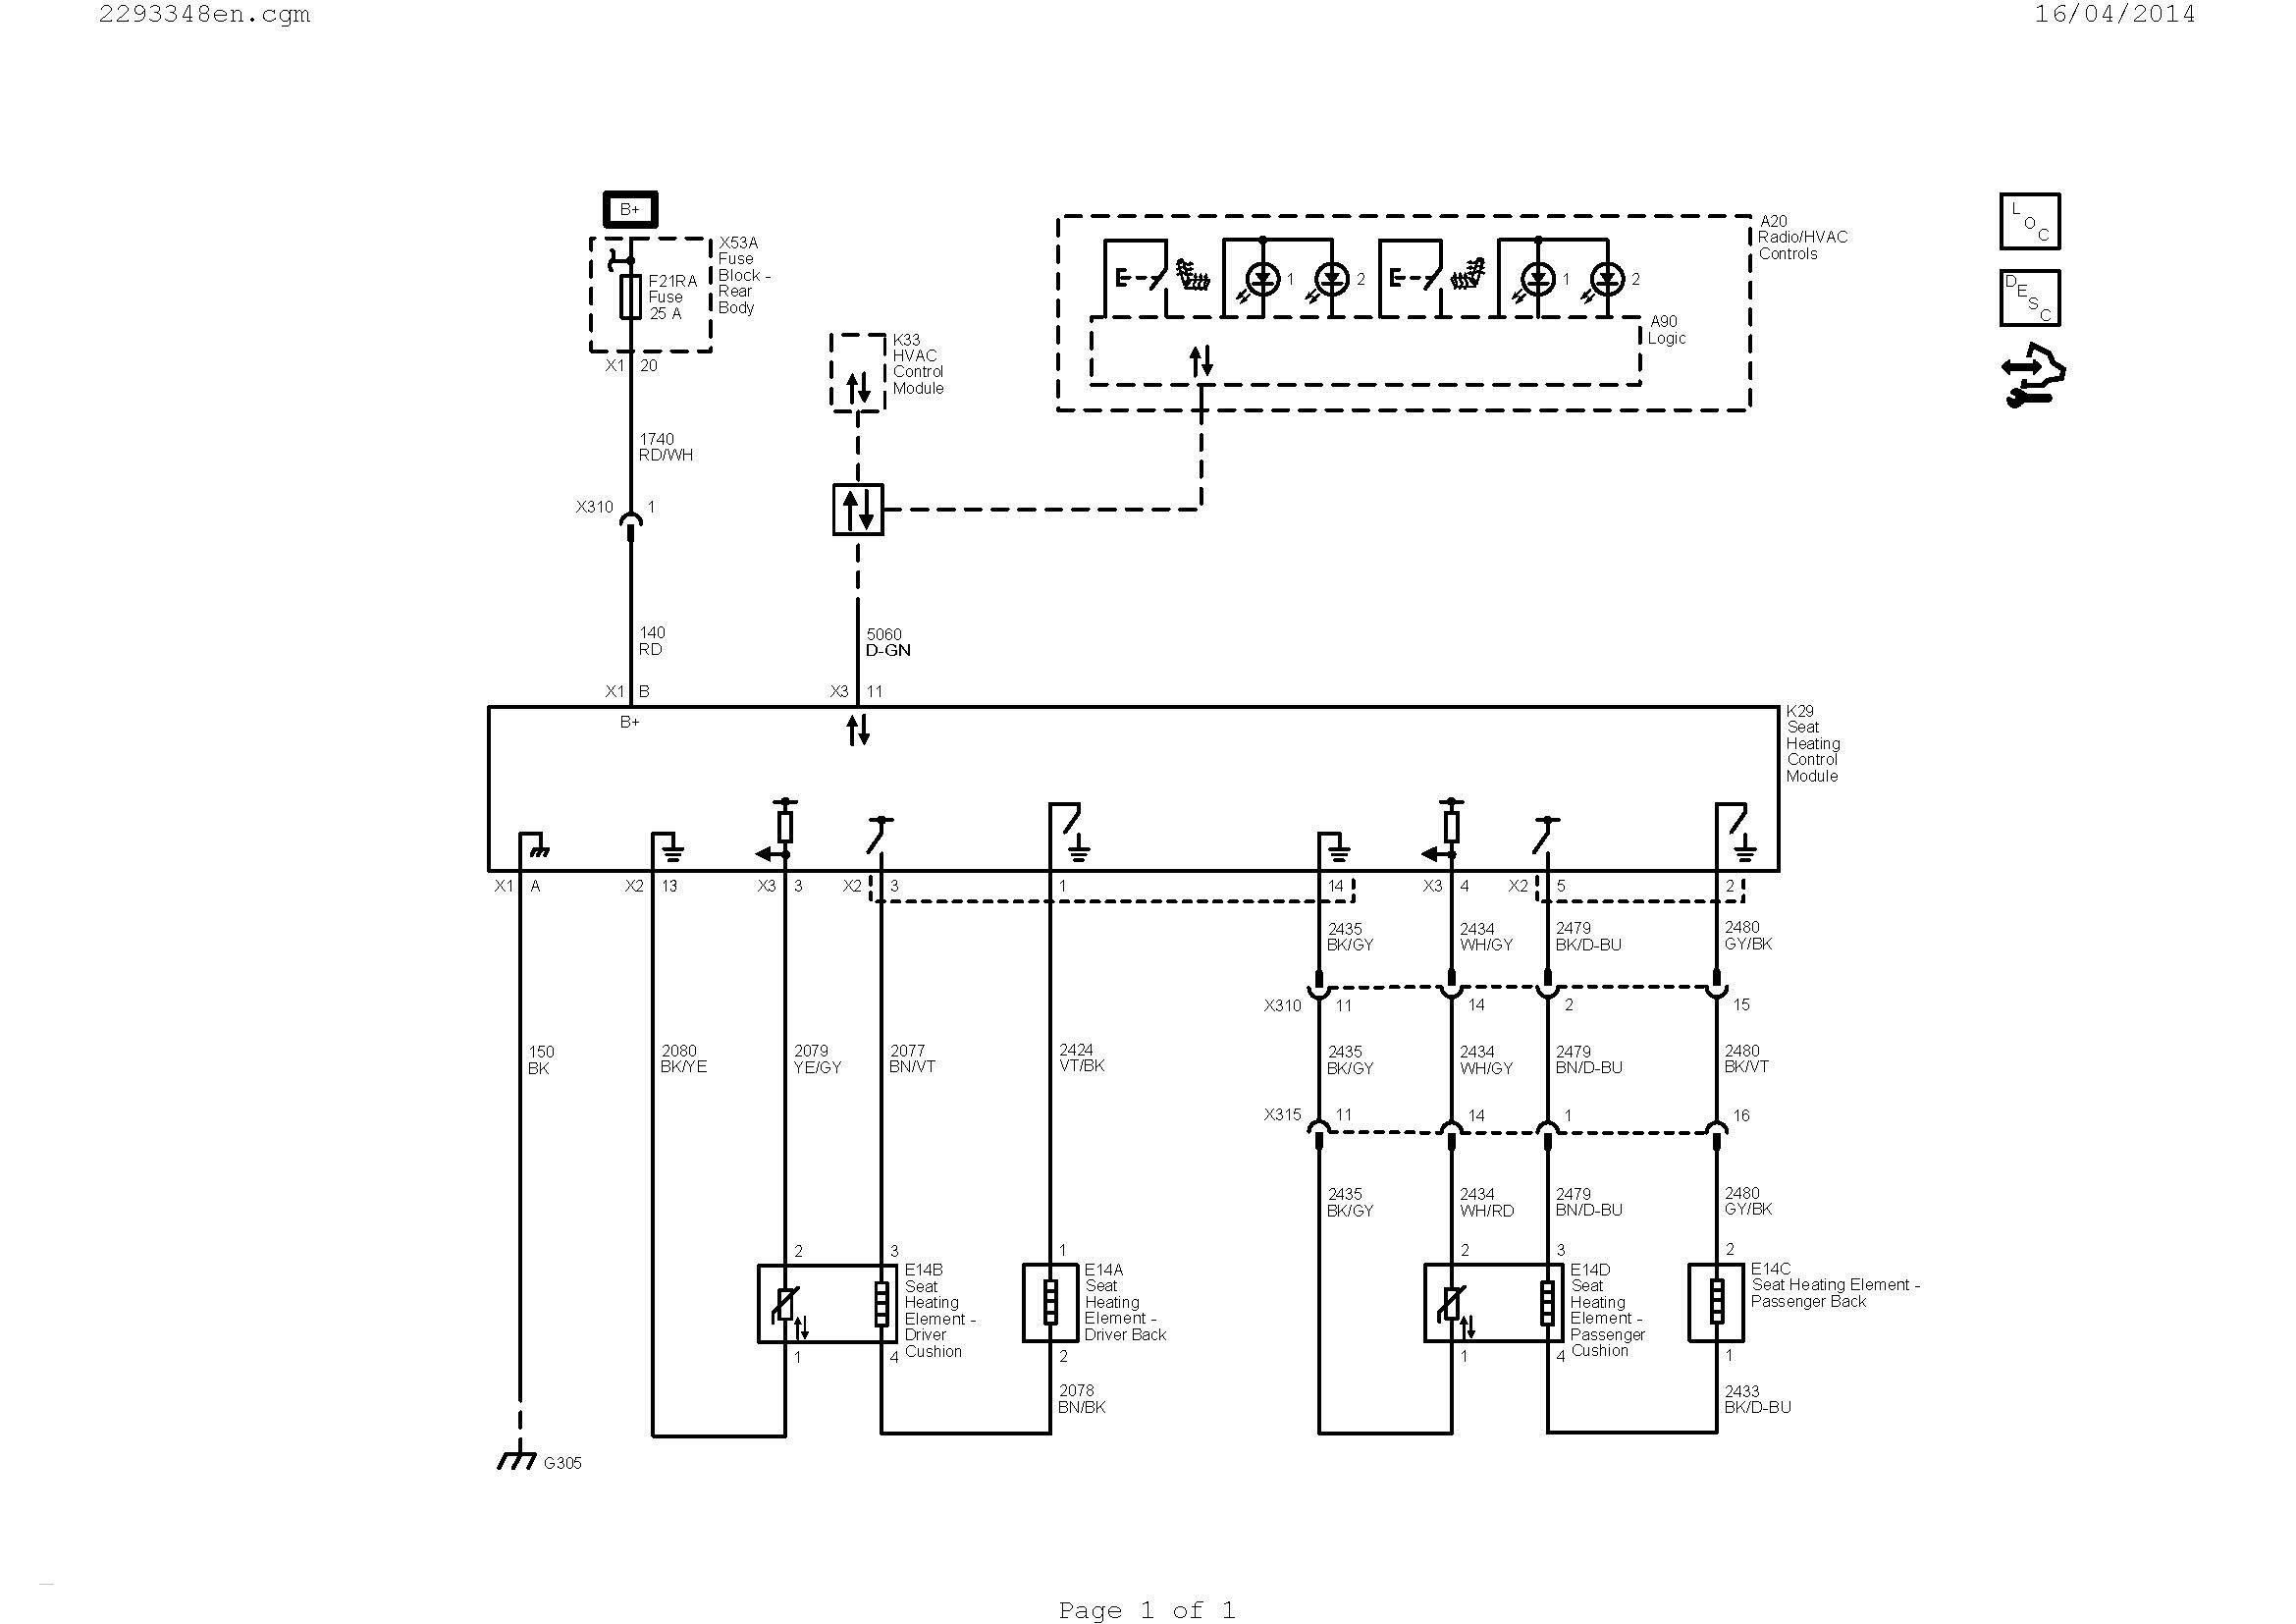 New How To Read Wiring Schematic Diagram Wiringdiagram Diagramming Diagramm Visuals Visualisati Electrical Wiring Diagram Electrical Diagram House Wiring